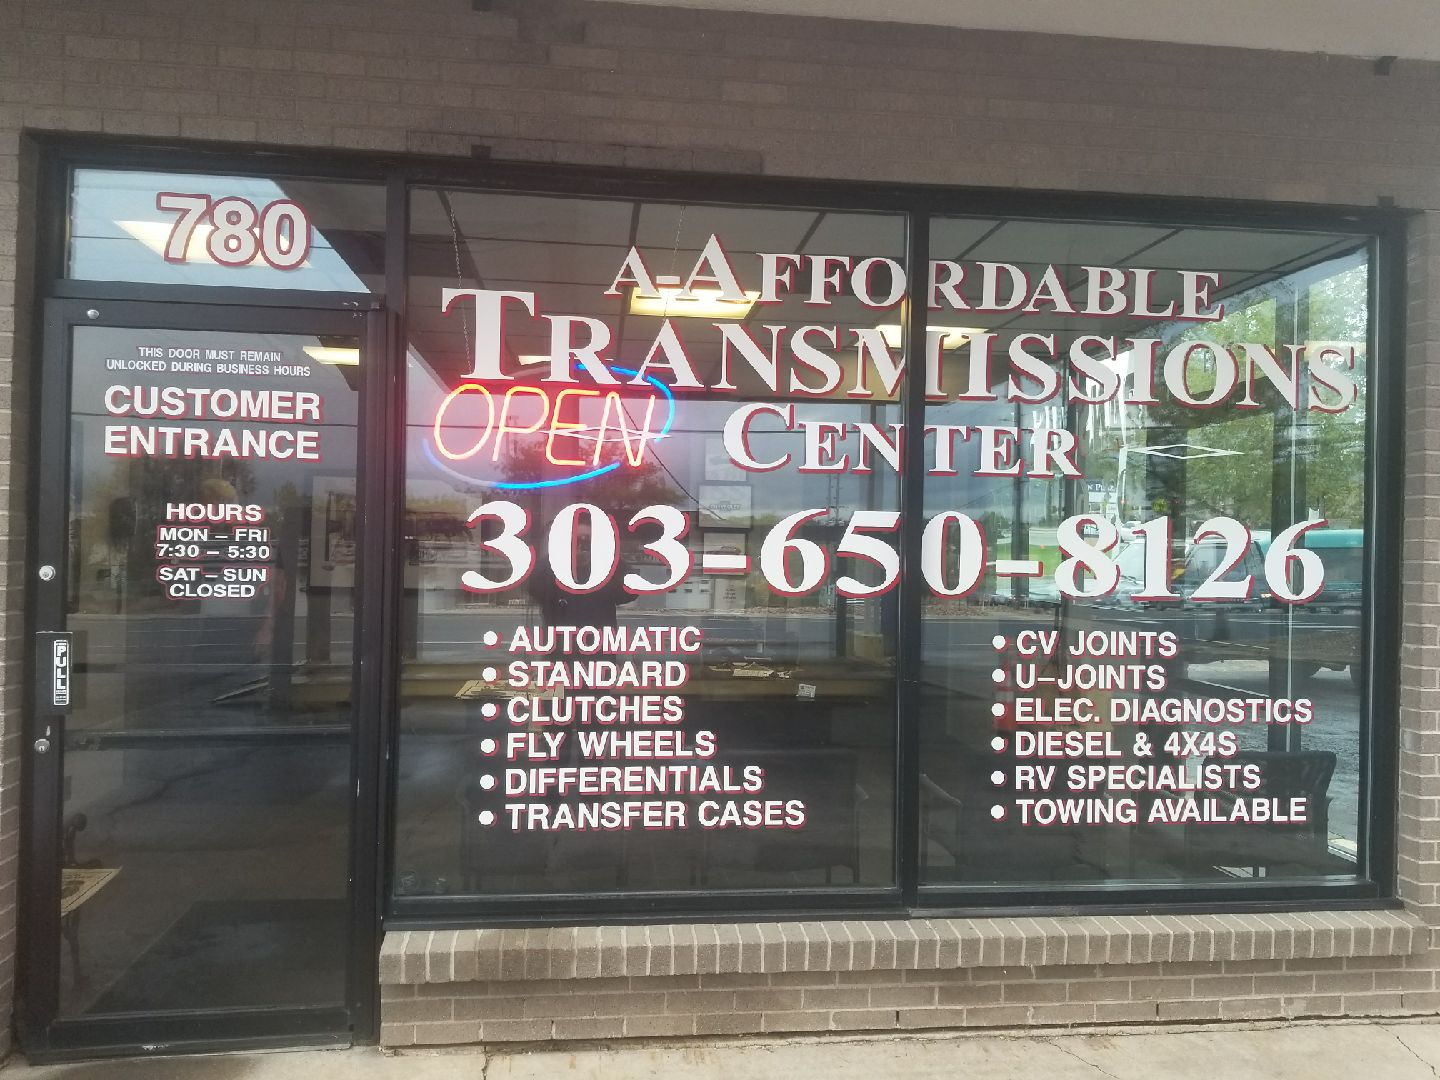 A-Affordable Transmissions Center reviews | Automotive at 780 W 84th Ave - Thornton CO